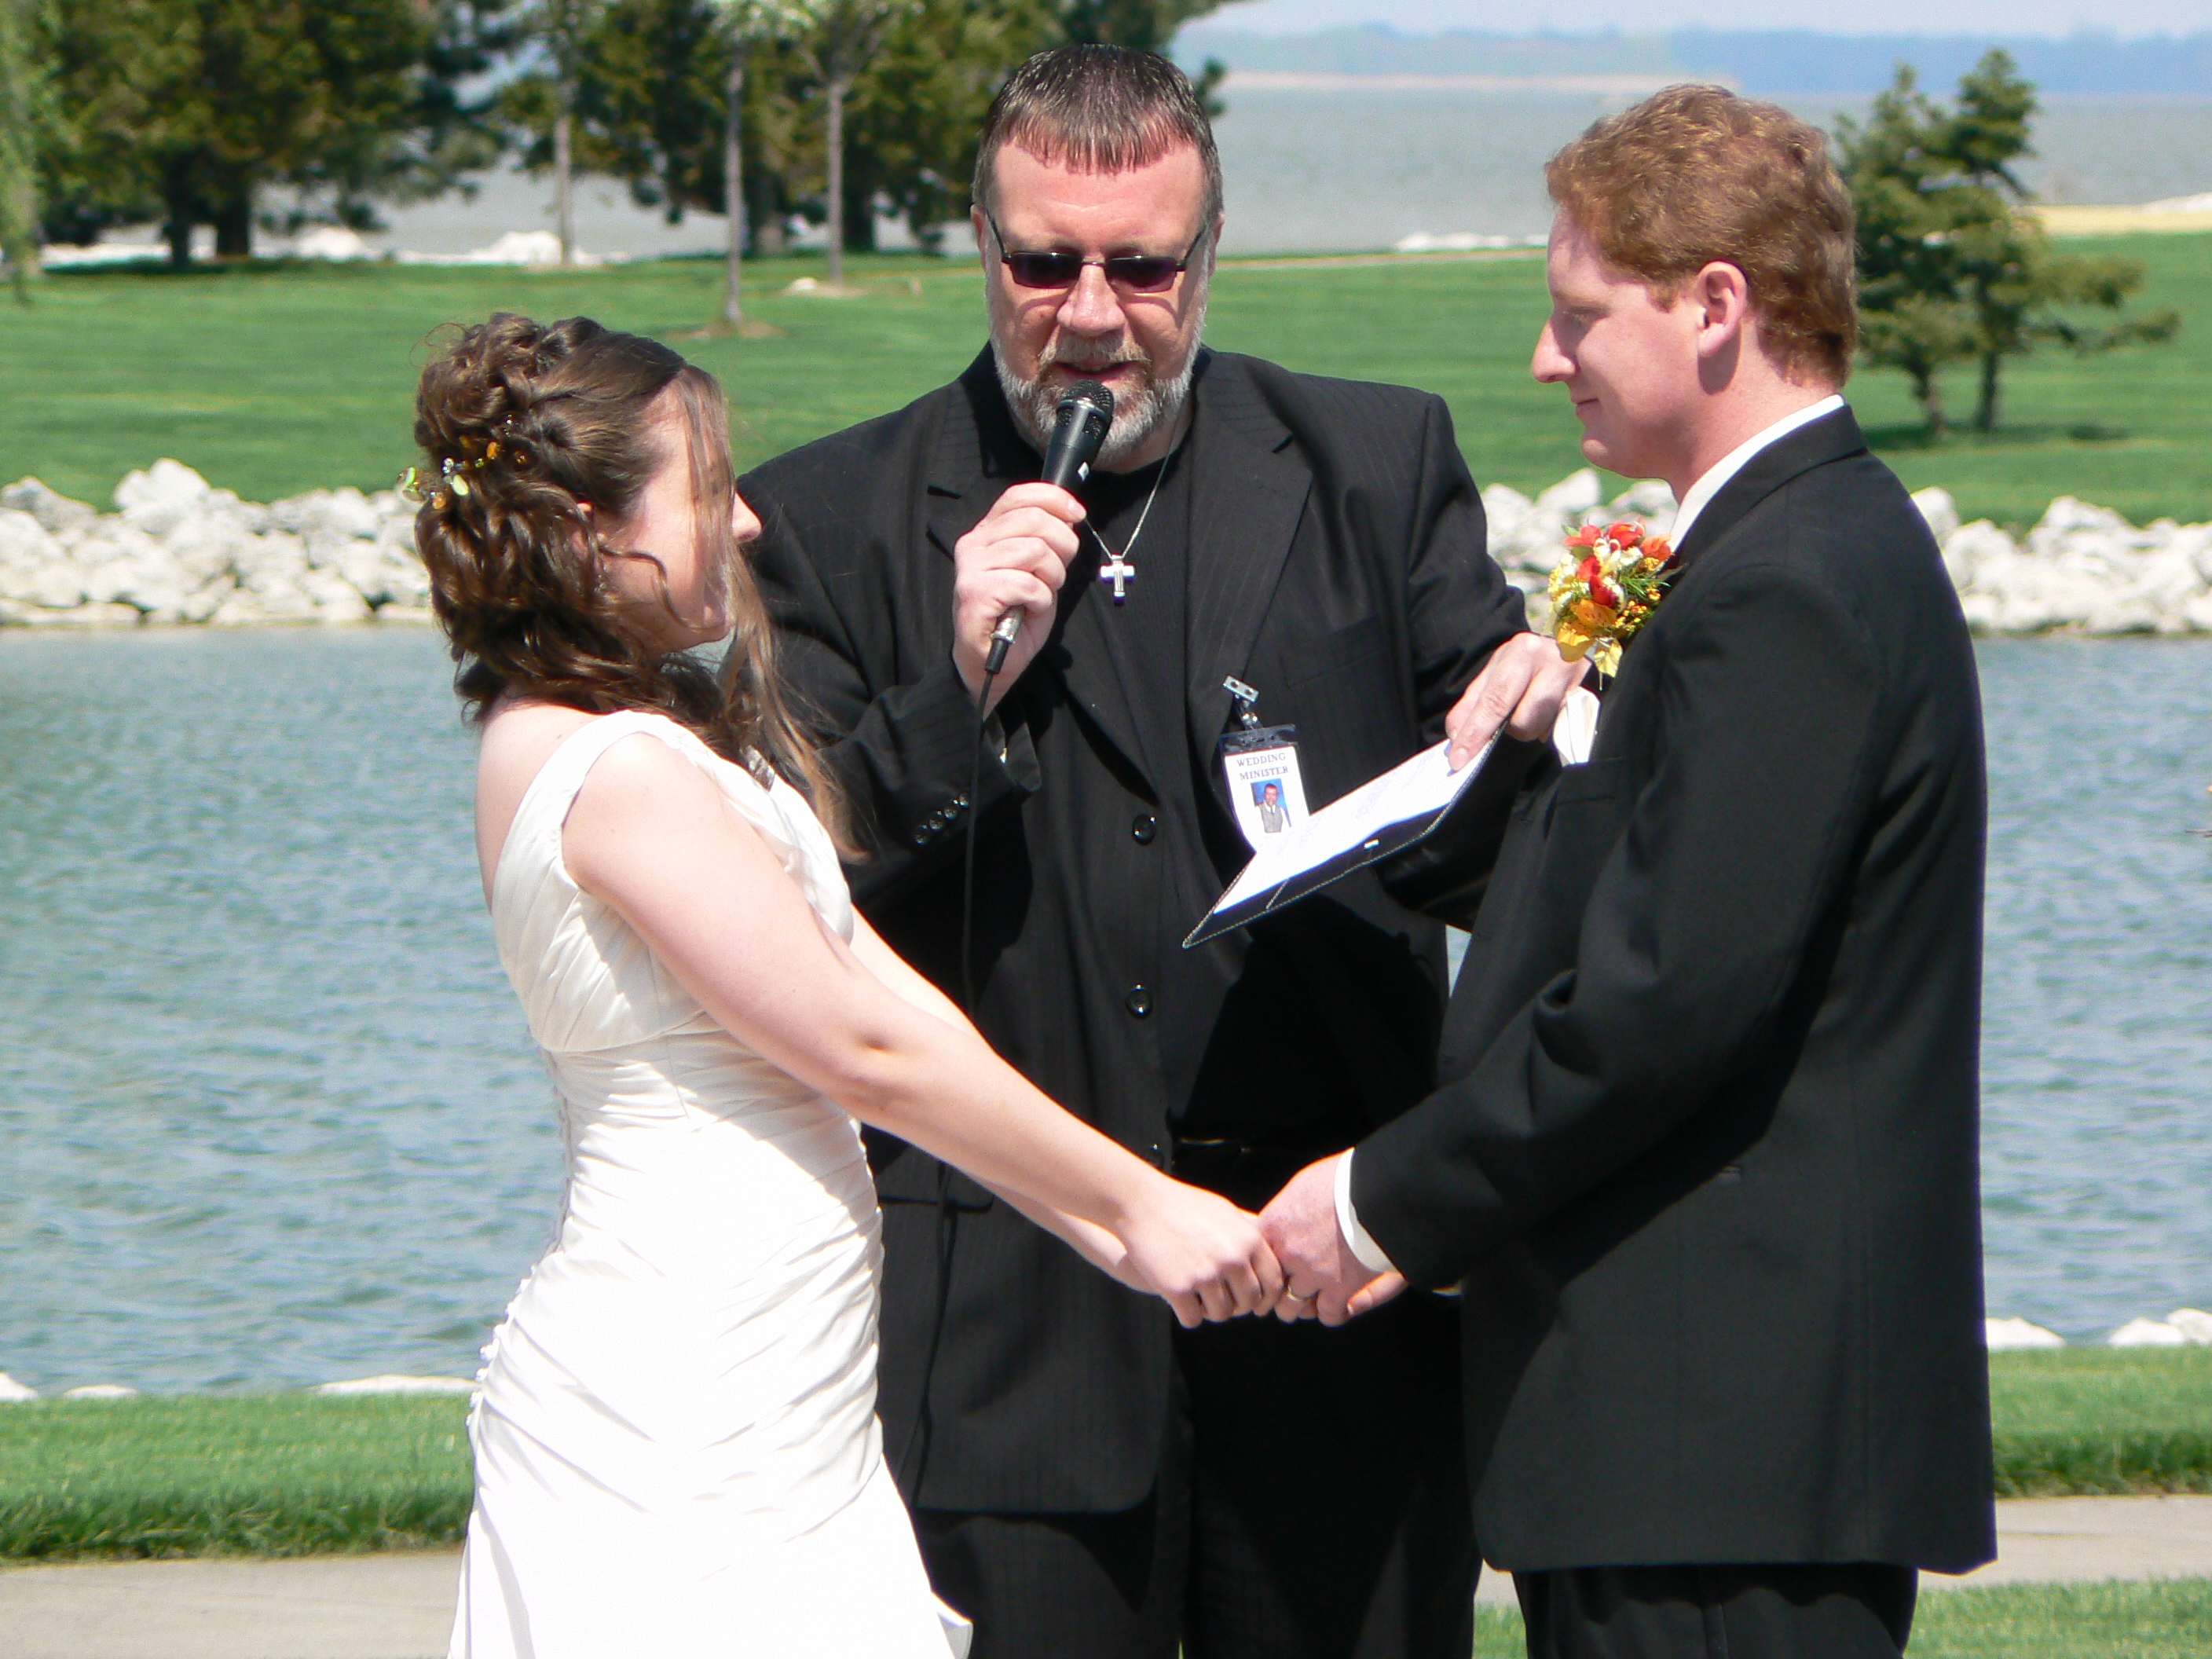 reverend simon is the founder of toledo wedding officiant is an ohio licensed wedding officiant and been a part of over 600 weddings in nearly 30 years in